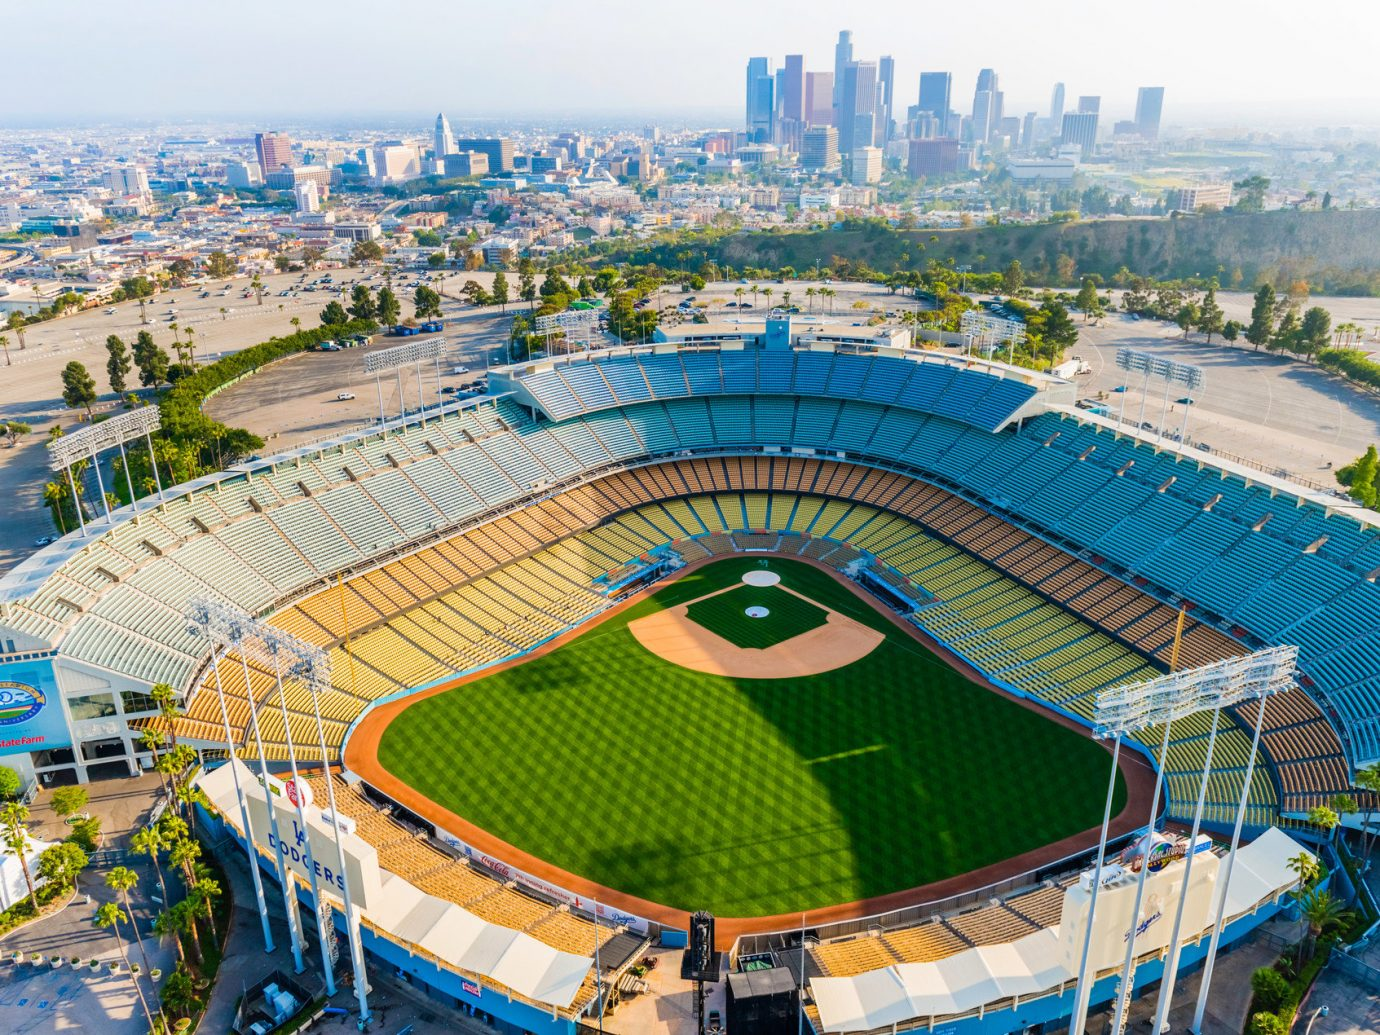 Offbeat sky structure outdoor geographical feature baseball park stadium building bird's eye view sport venue soccer specific stadium baseball field aerial photography City arena colorful